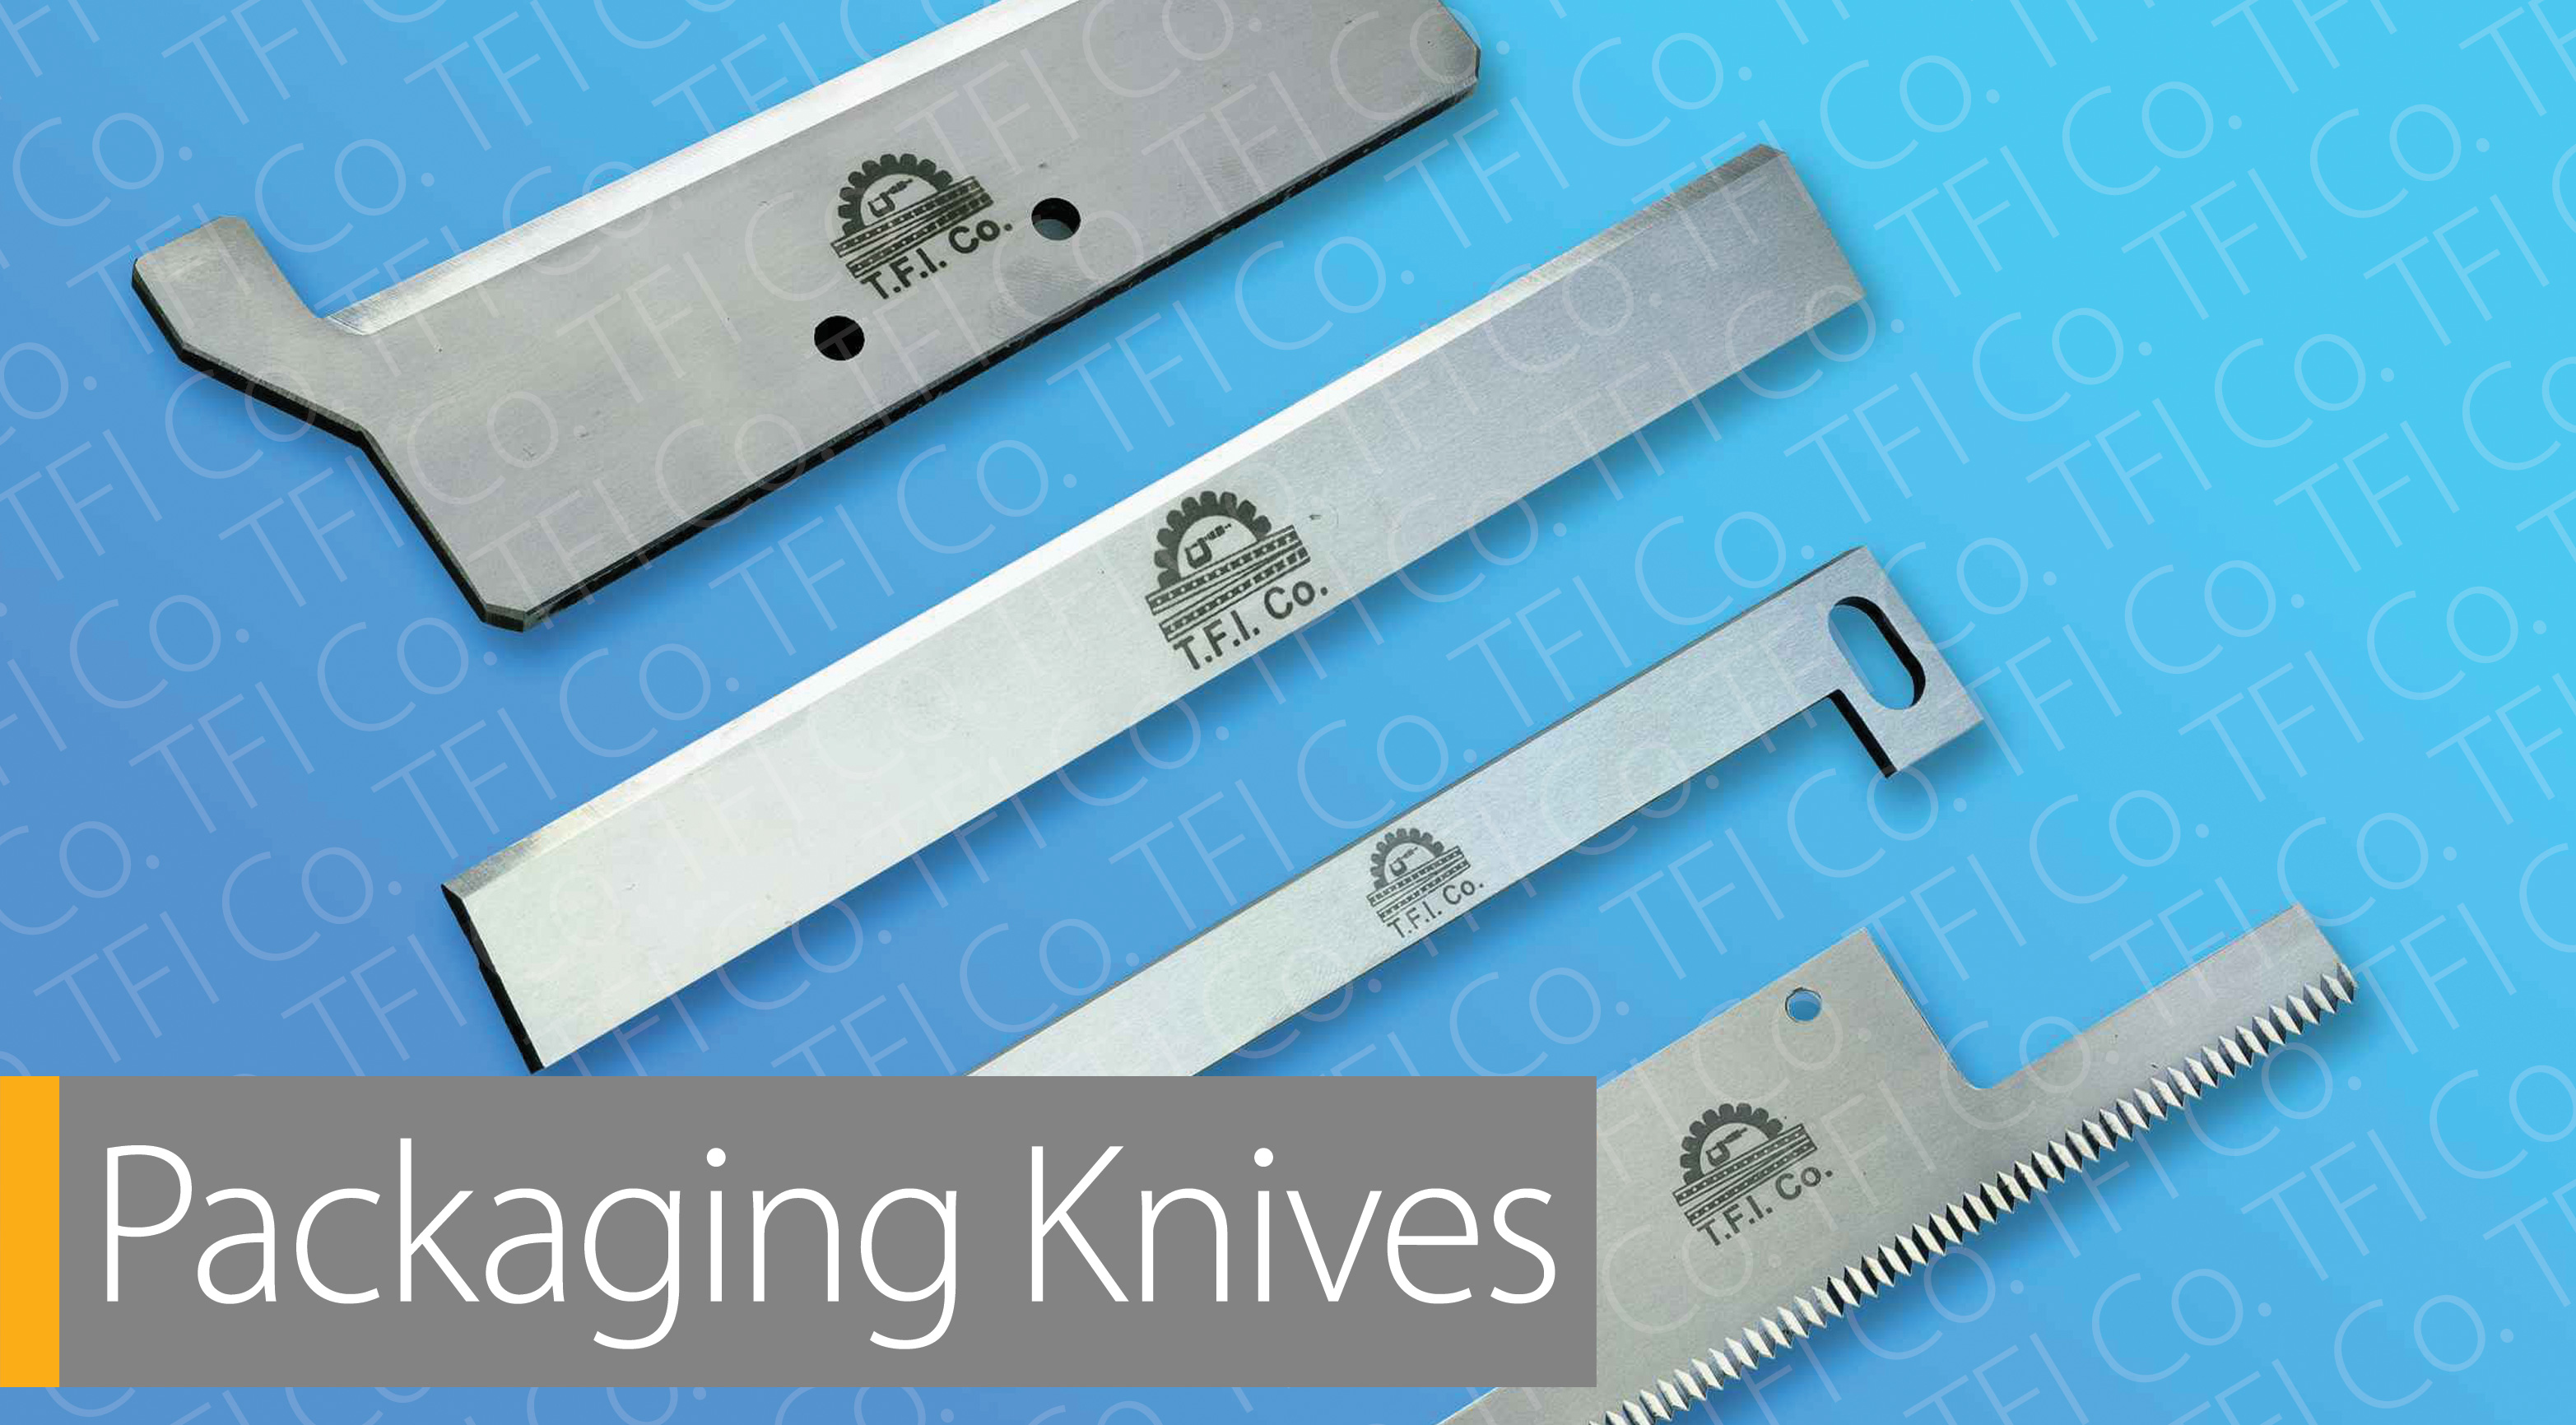 comb blade for chips تيغه هاي فولادي ايران برش تيز برنده پایا ابزار سازان  machine knives and packaging of food industry uae and kingdom saudi arabia, india , georgia and tfico, TFI co. steel blades manufacturer est. 1965 belarus